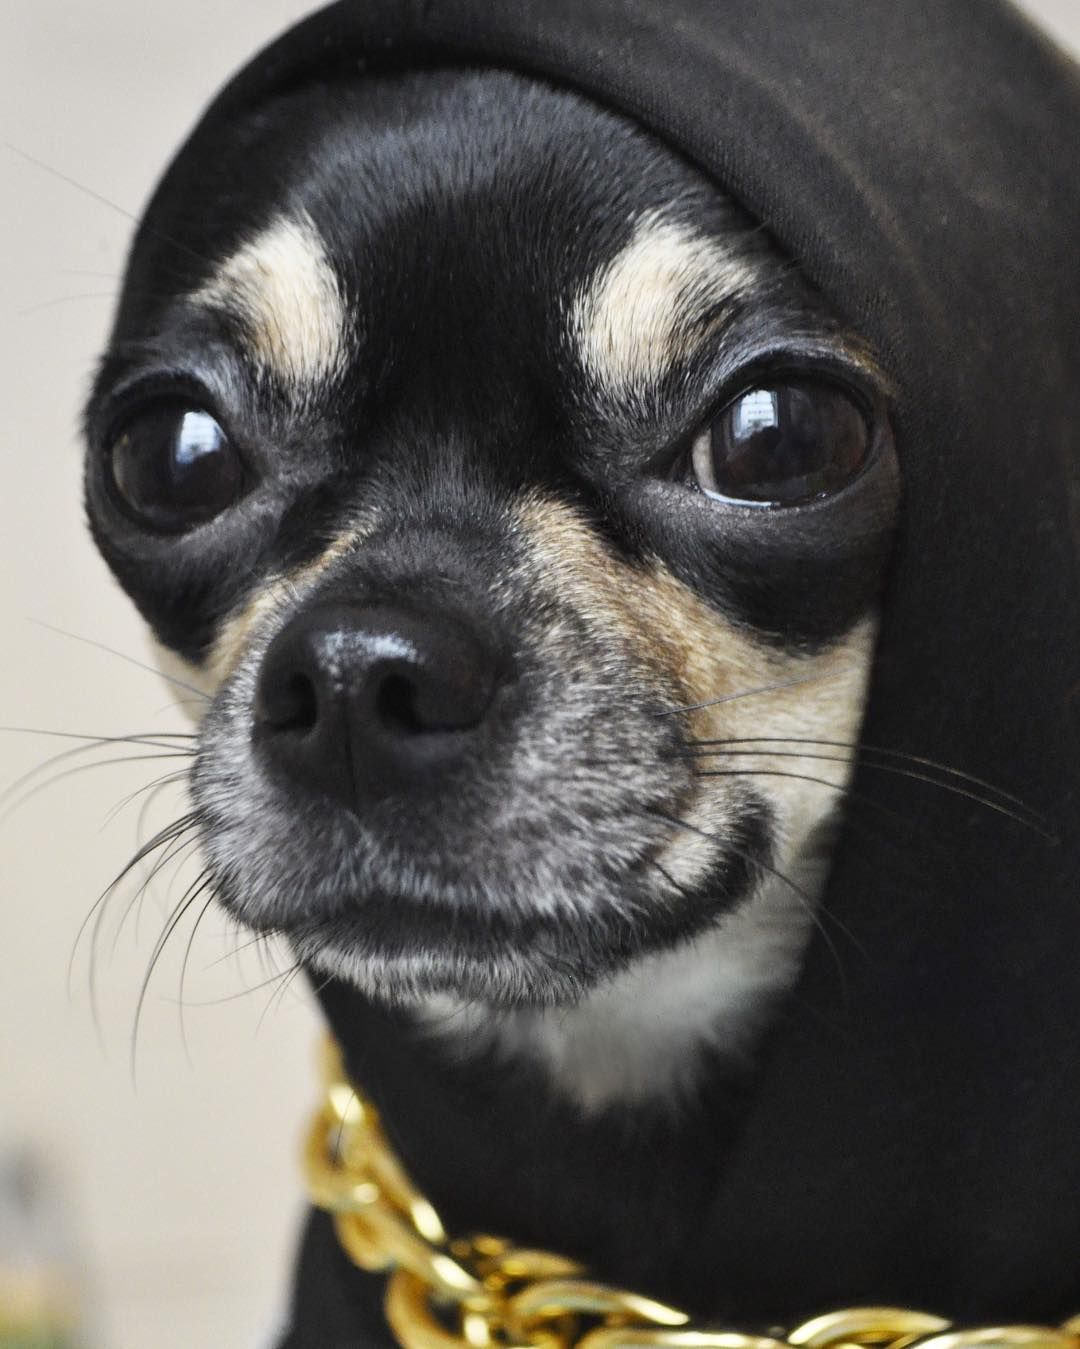 Look At The Sweet Face Those Eyes God Bless It Chihuahua